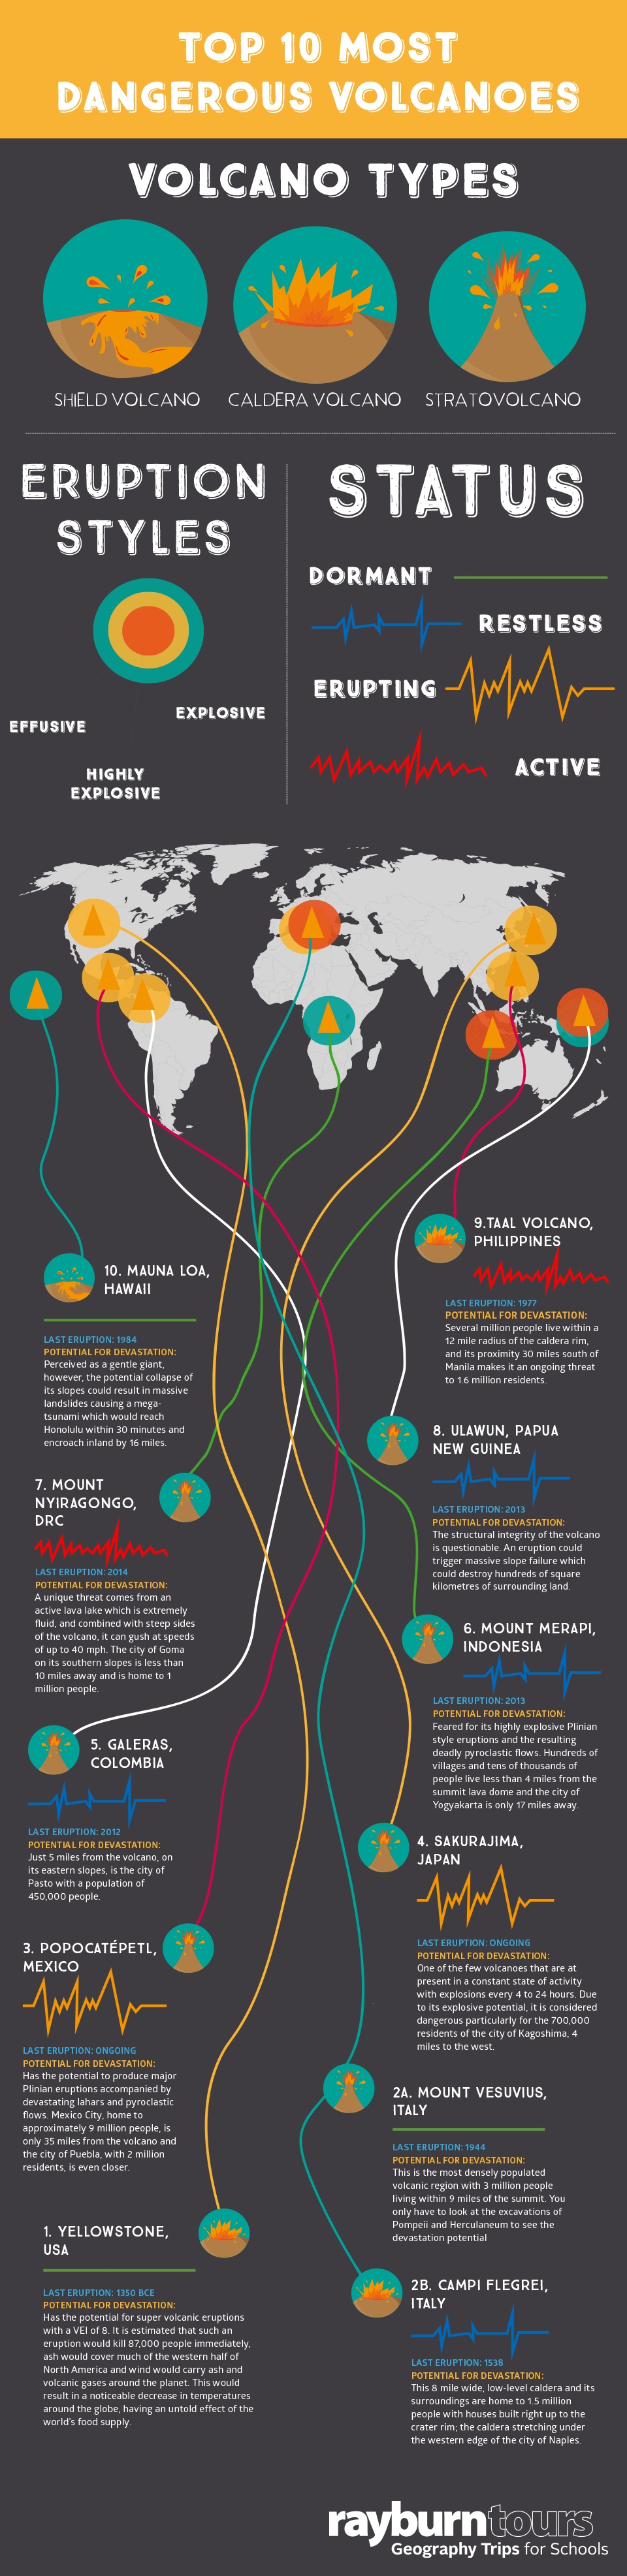 Top 10 Most Dangerous Volcanoes #infographic